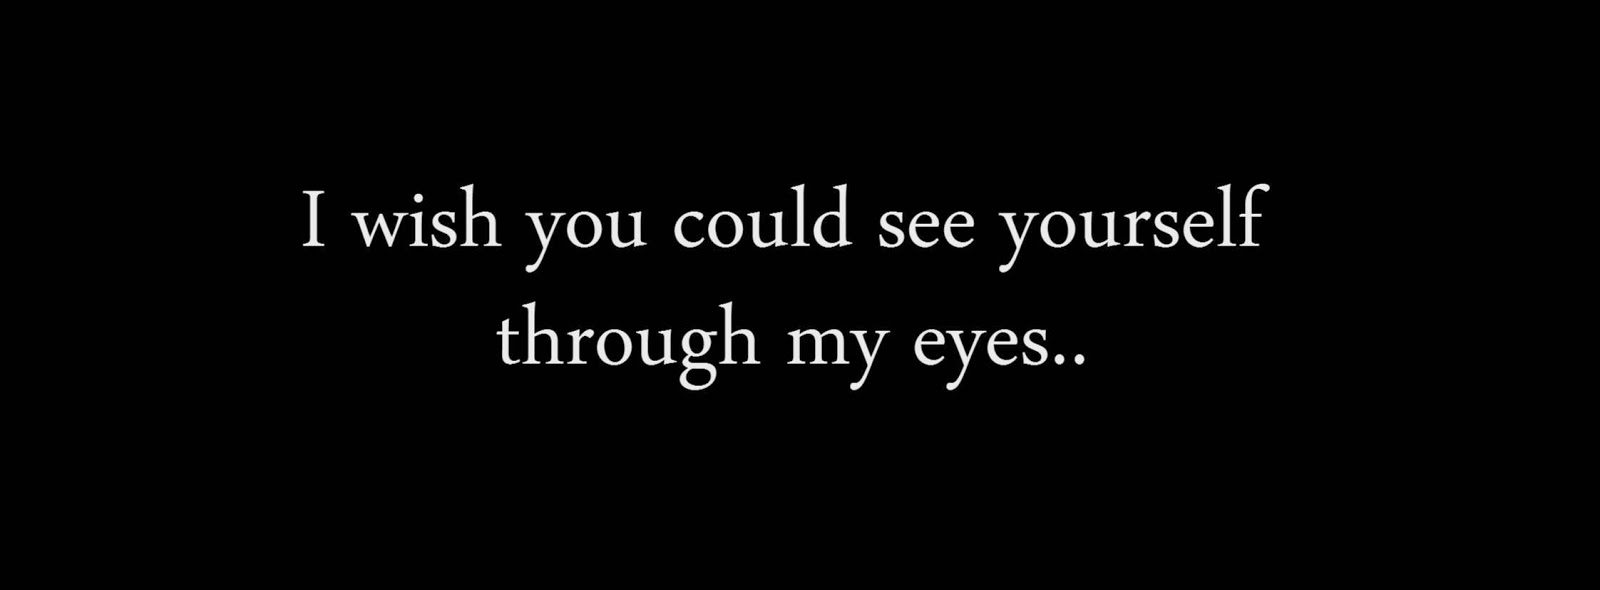 If You Could See You Through My Eyes Quotes: Fallen Angel: 05/20/15